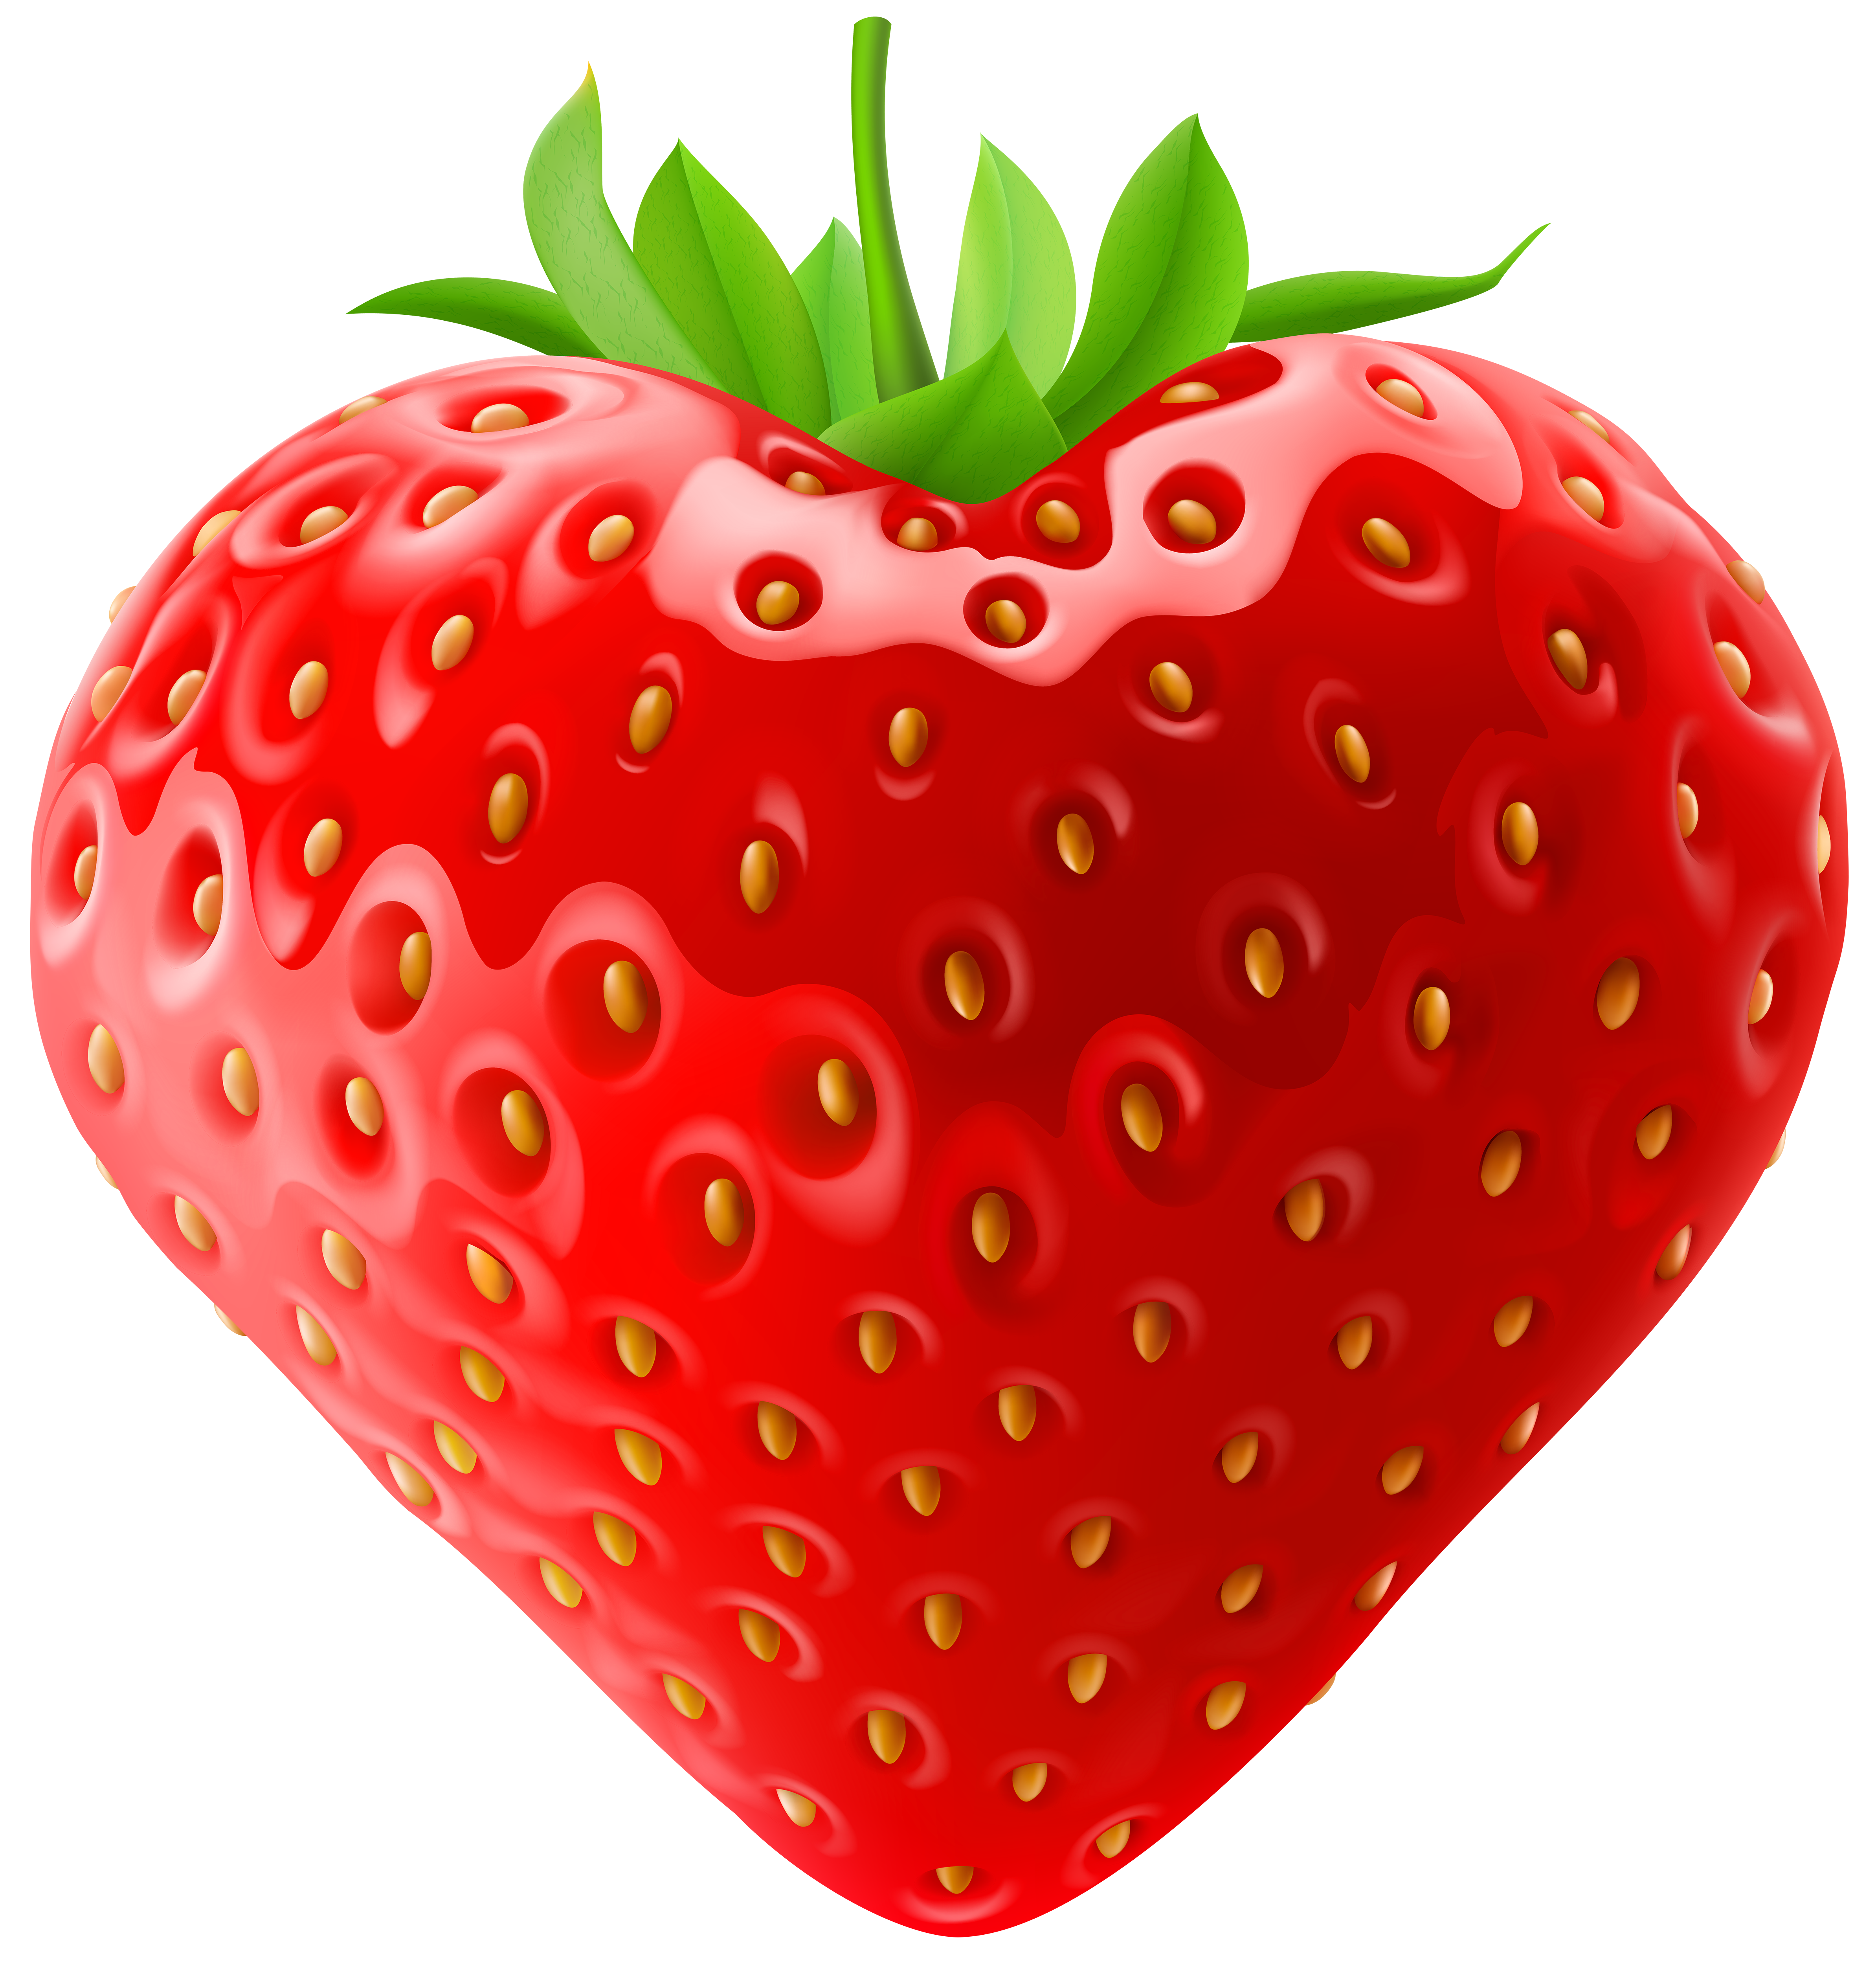 Strawberry png clip art. Hearts clipart fruit